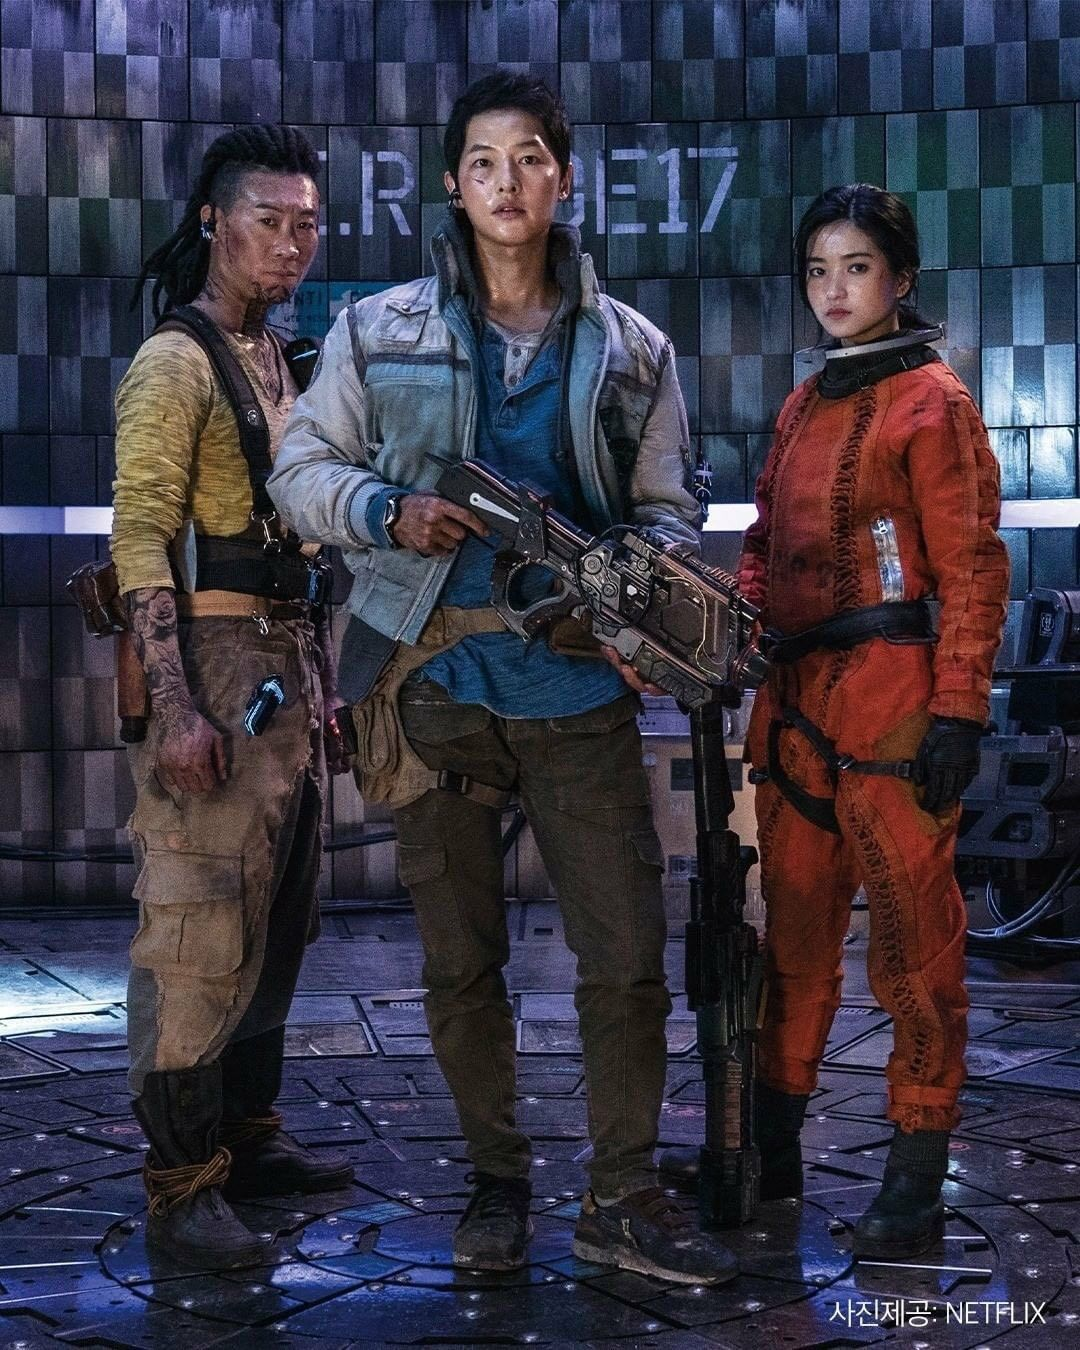 Space Sweepers crew in 2021 | Song joon ki, Movies outfit, Space movies